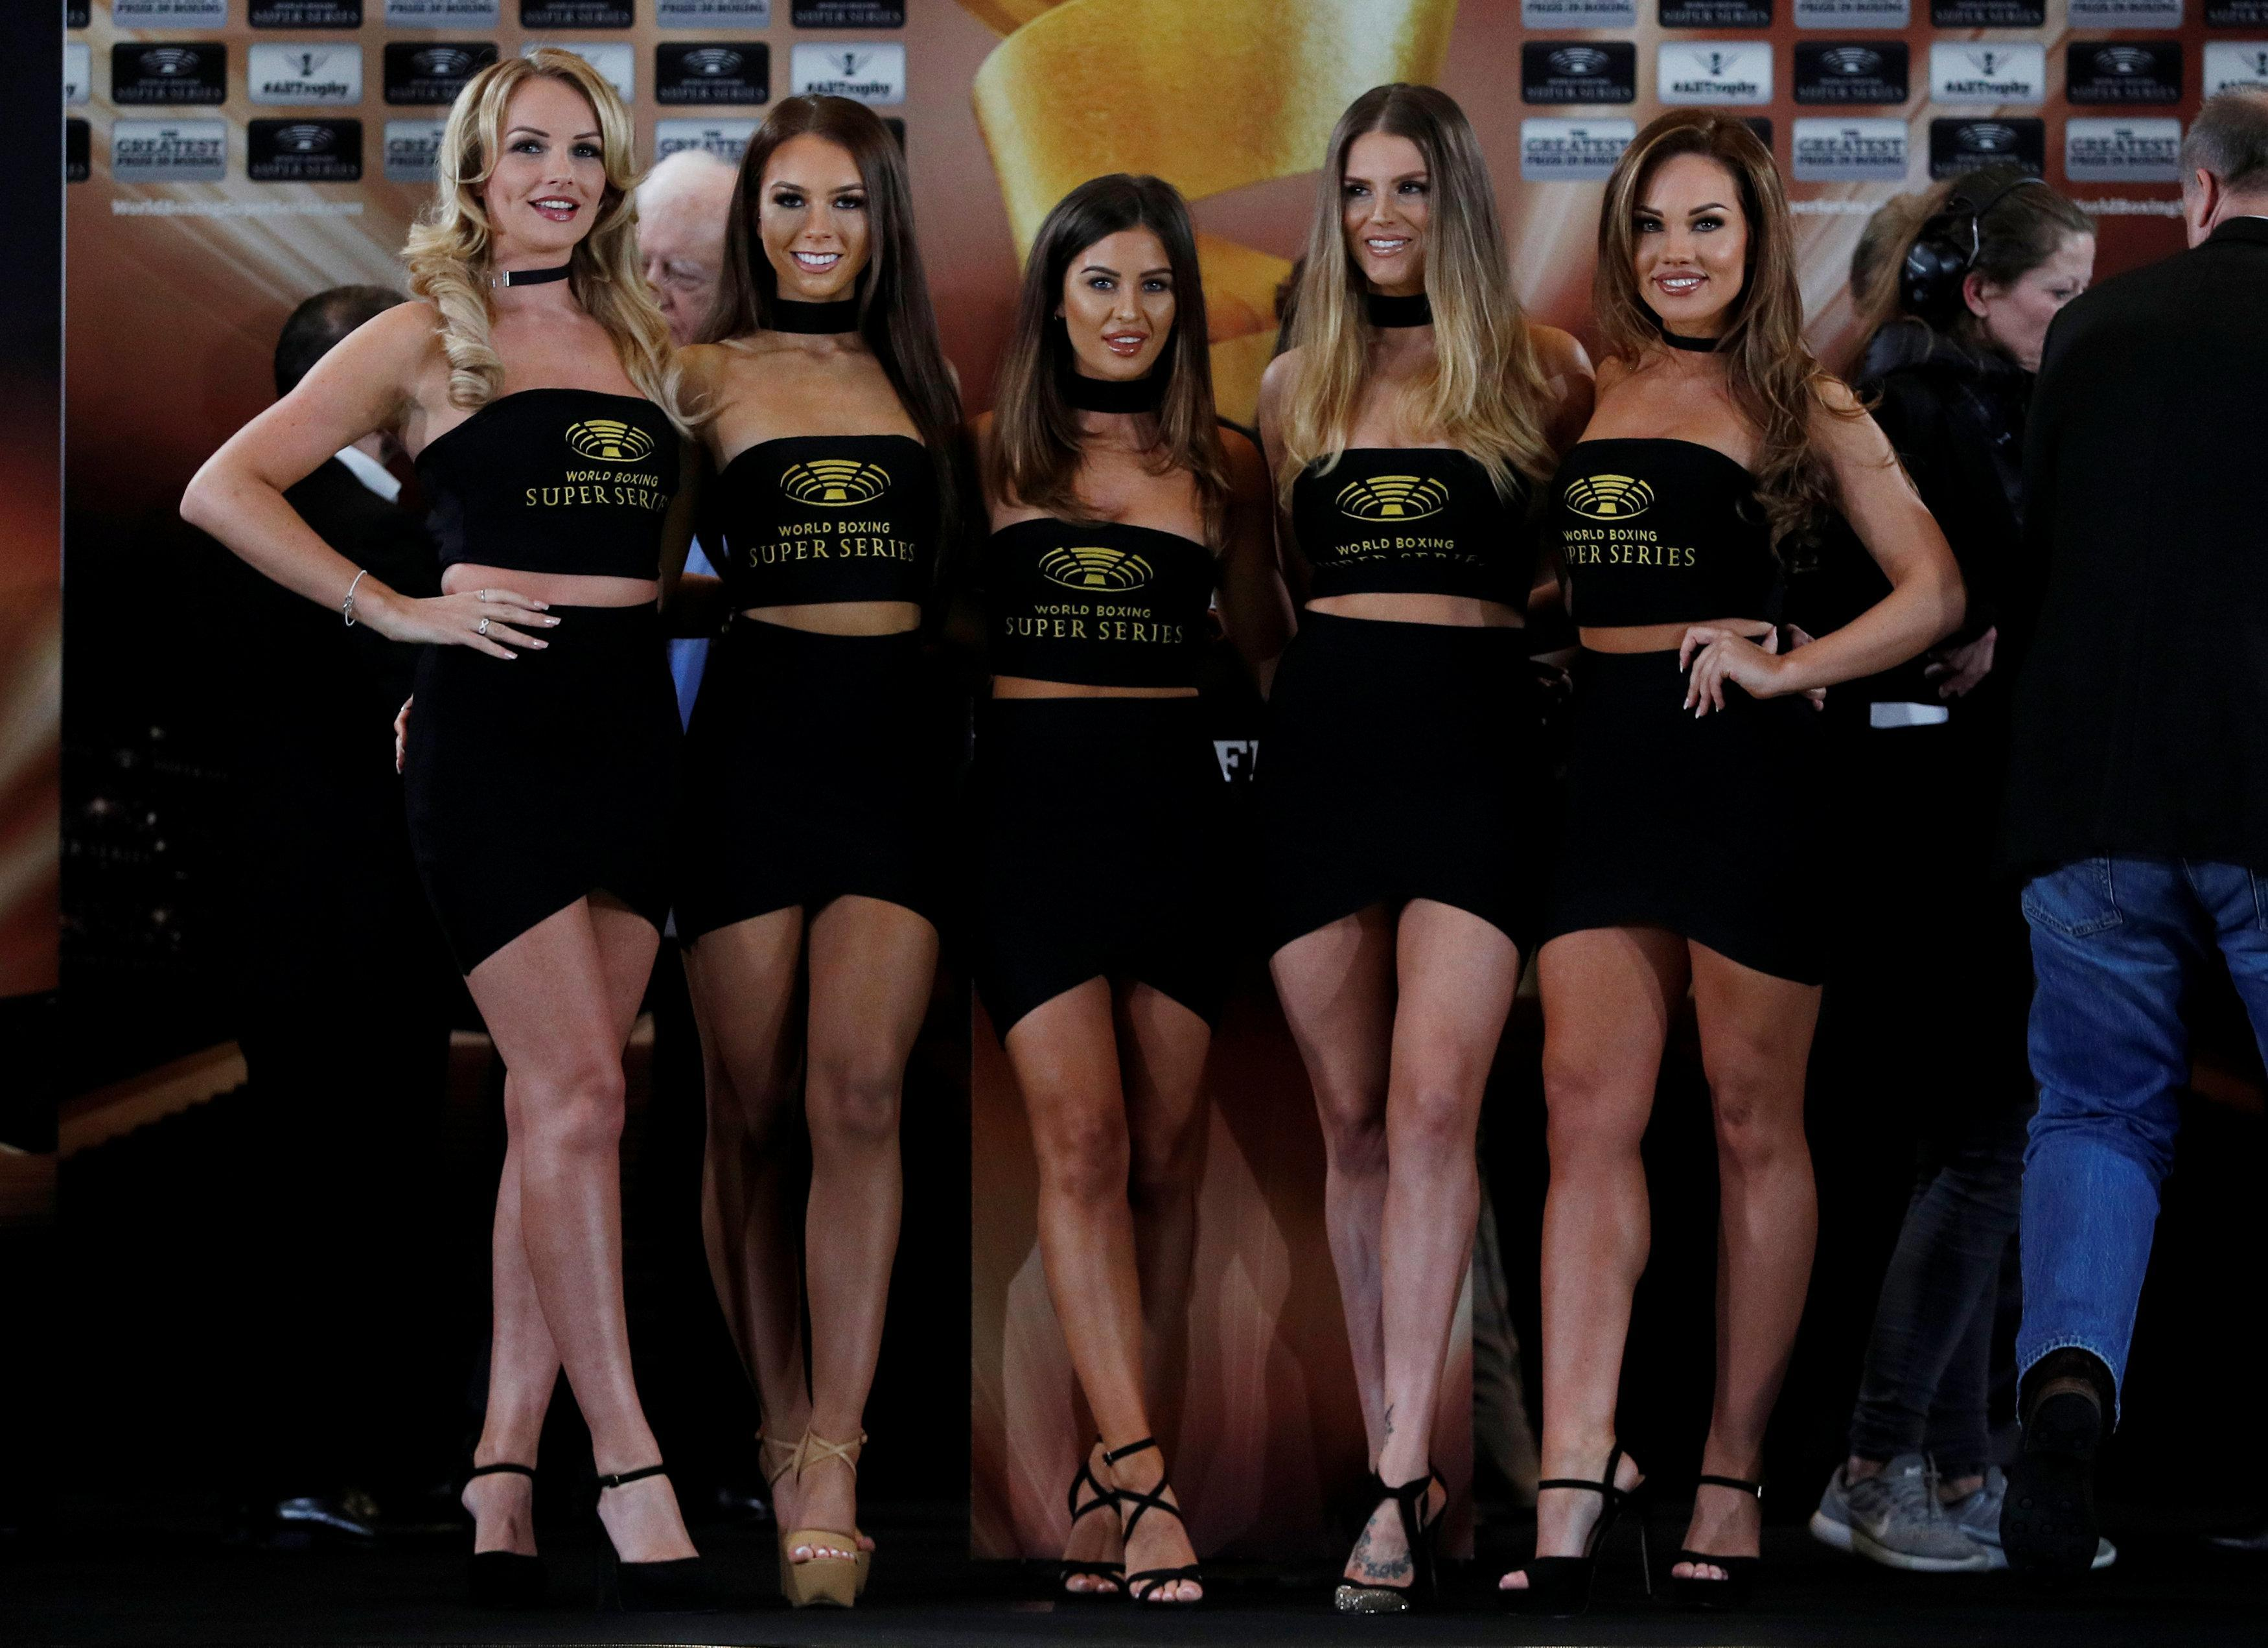 Sacked darts walk-on girl Charlotte Wood to lead team of ring girls for the George Groves vs Chris Eubank Jr clash